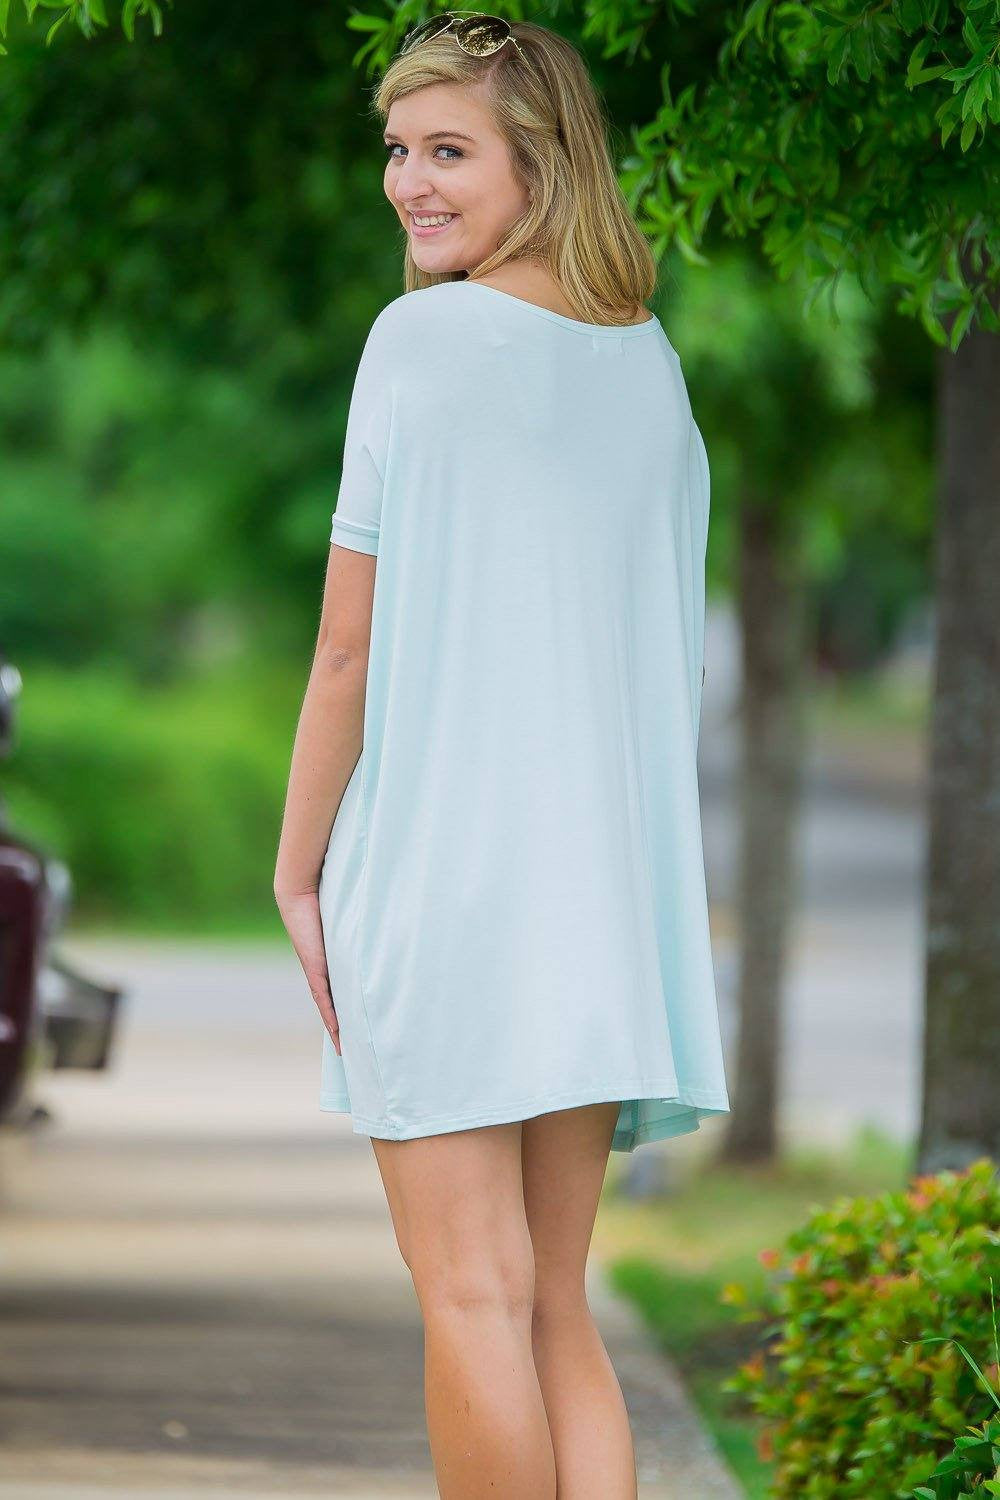 Short Sleeve Piko Tunic - Mint - Piko Clothing - 2